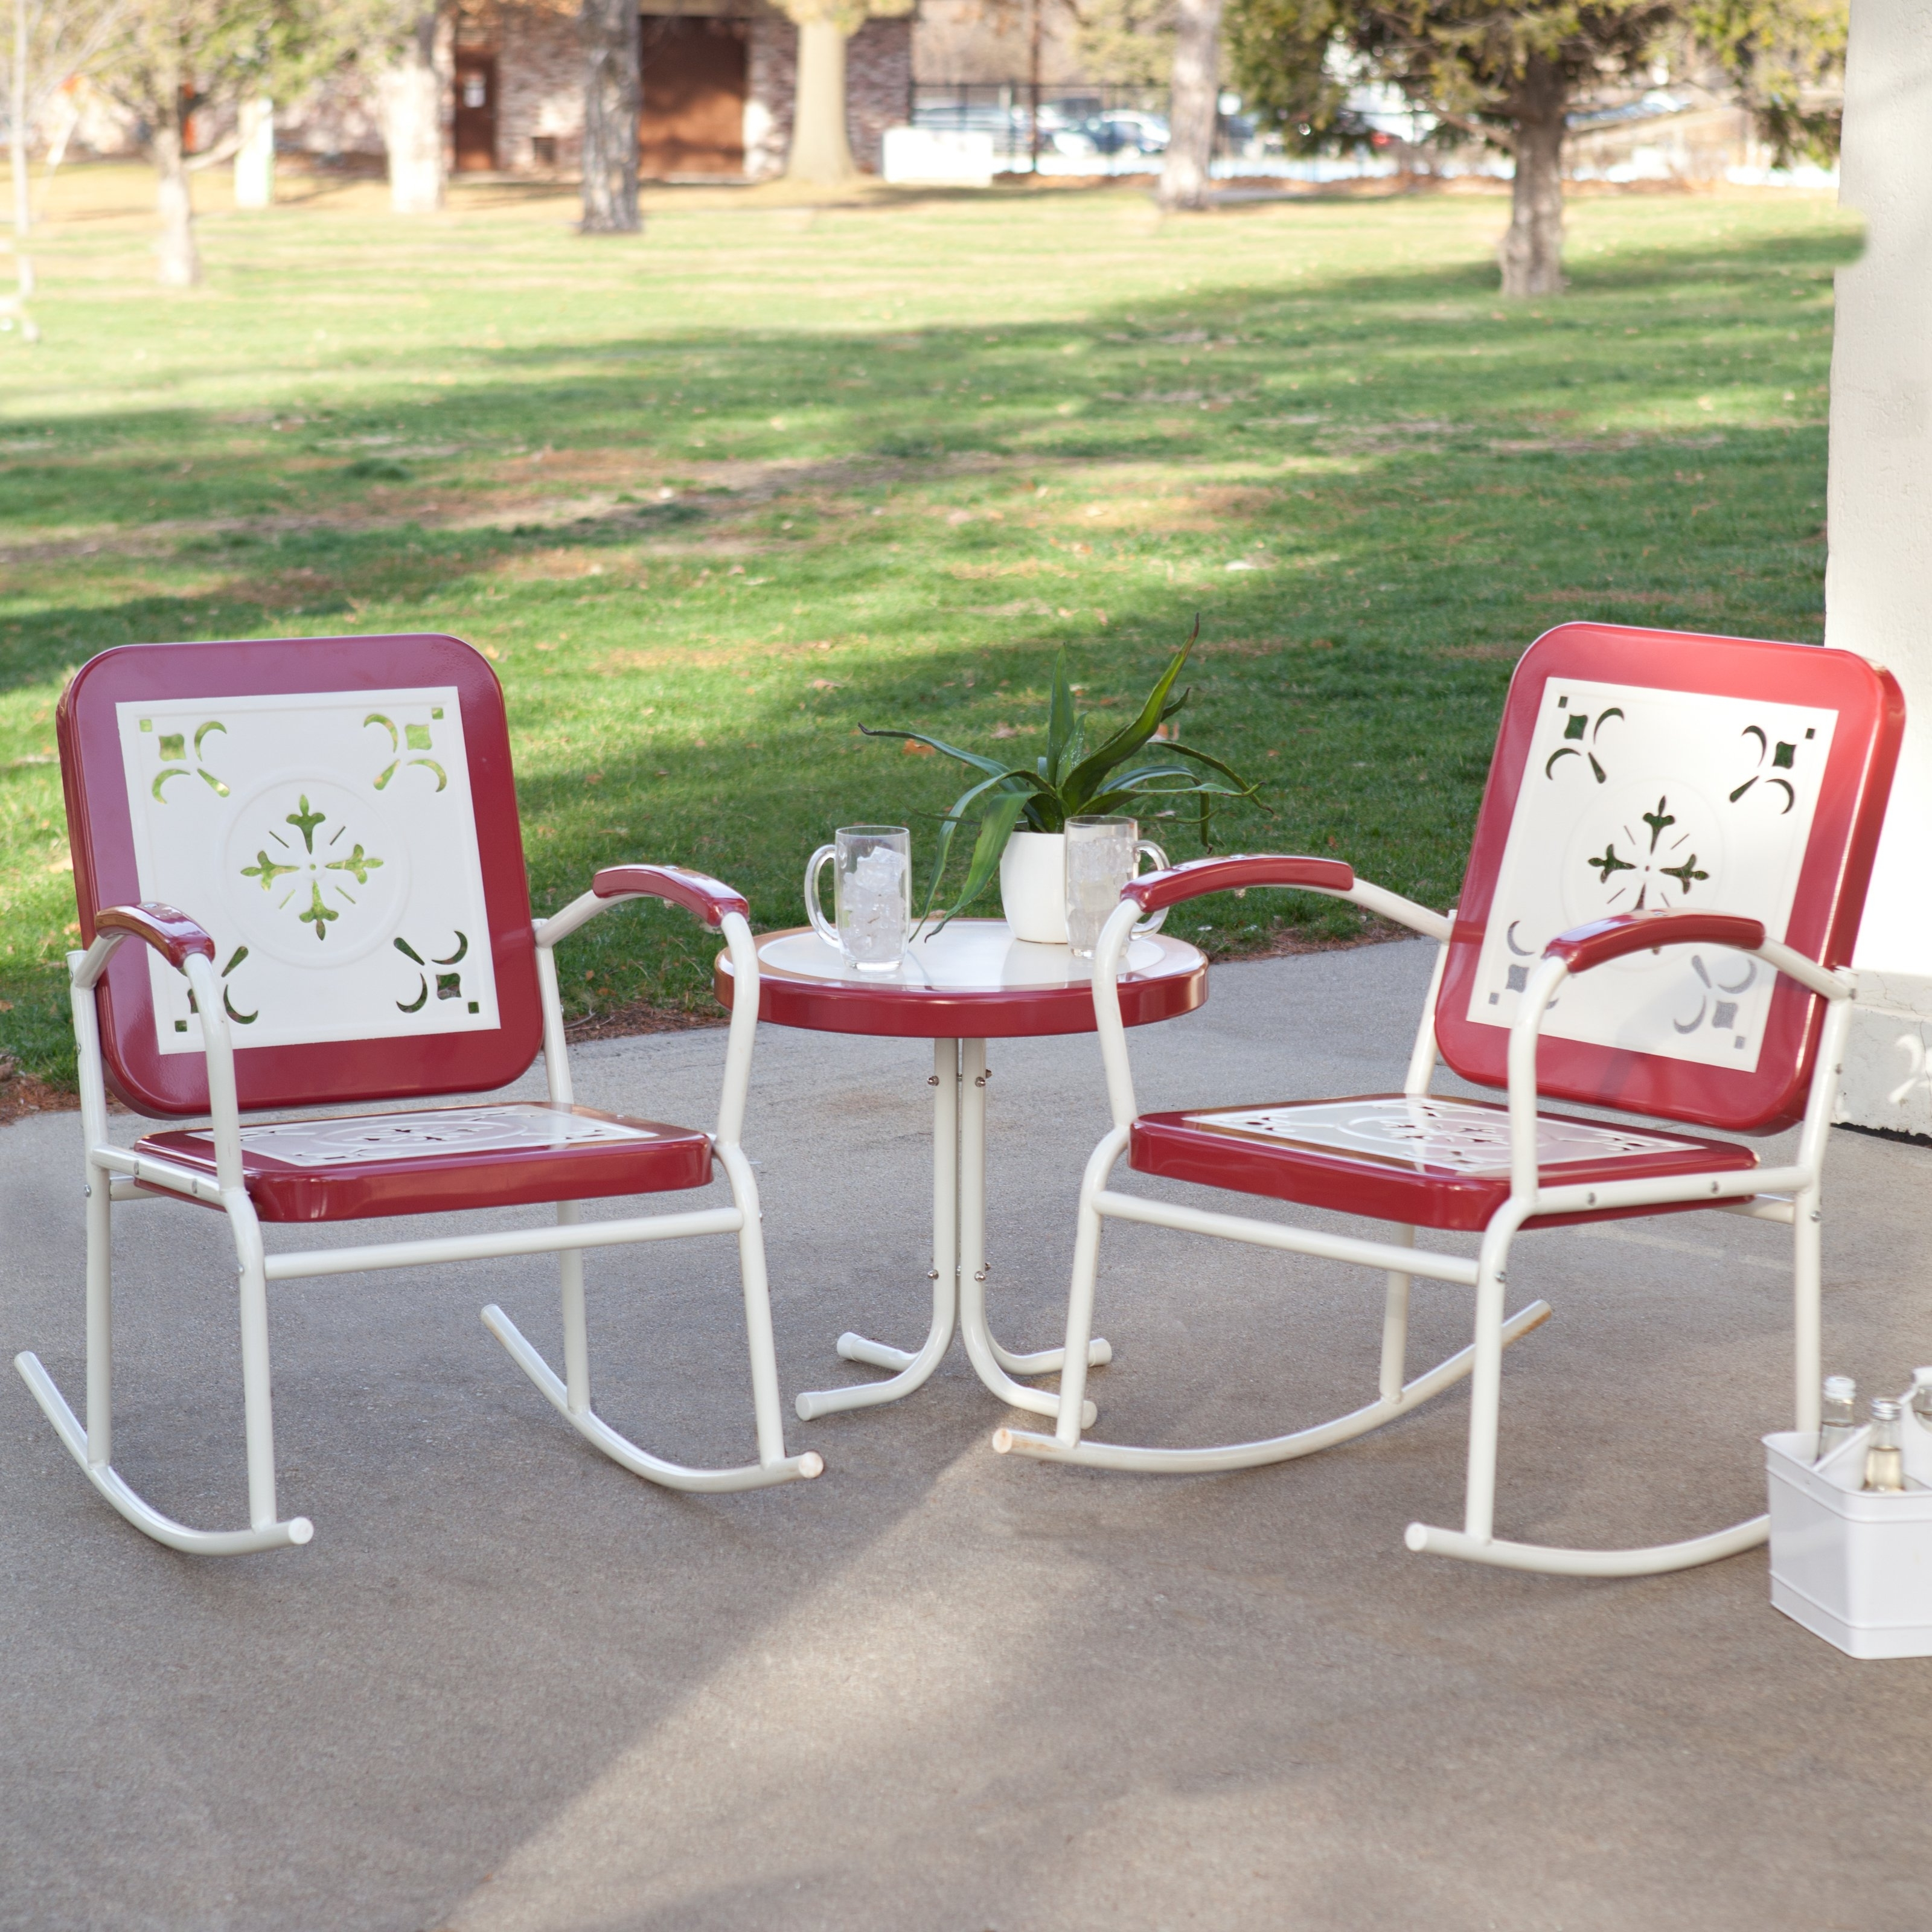 2018 Coral Coast Paradise Cove Retro Metal Rocking Chairs – Set Of 2 For Retro Outdoor Rocking Chairs (View 12 of 15)